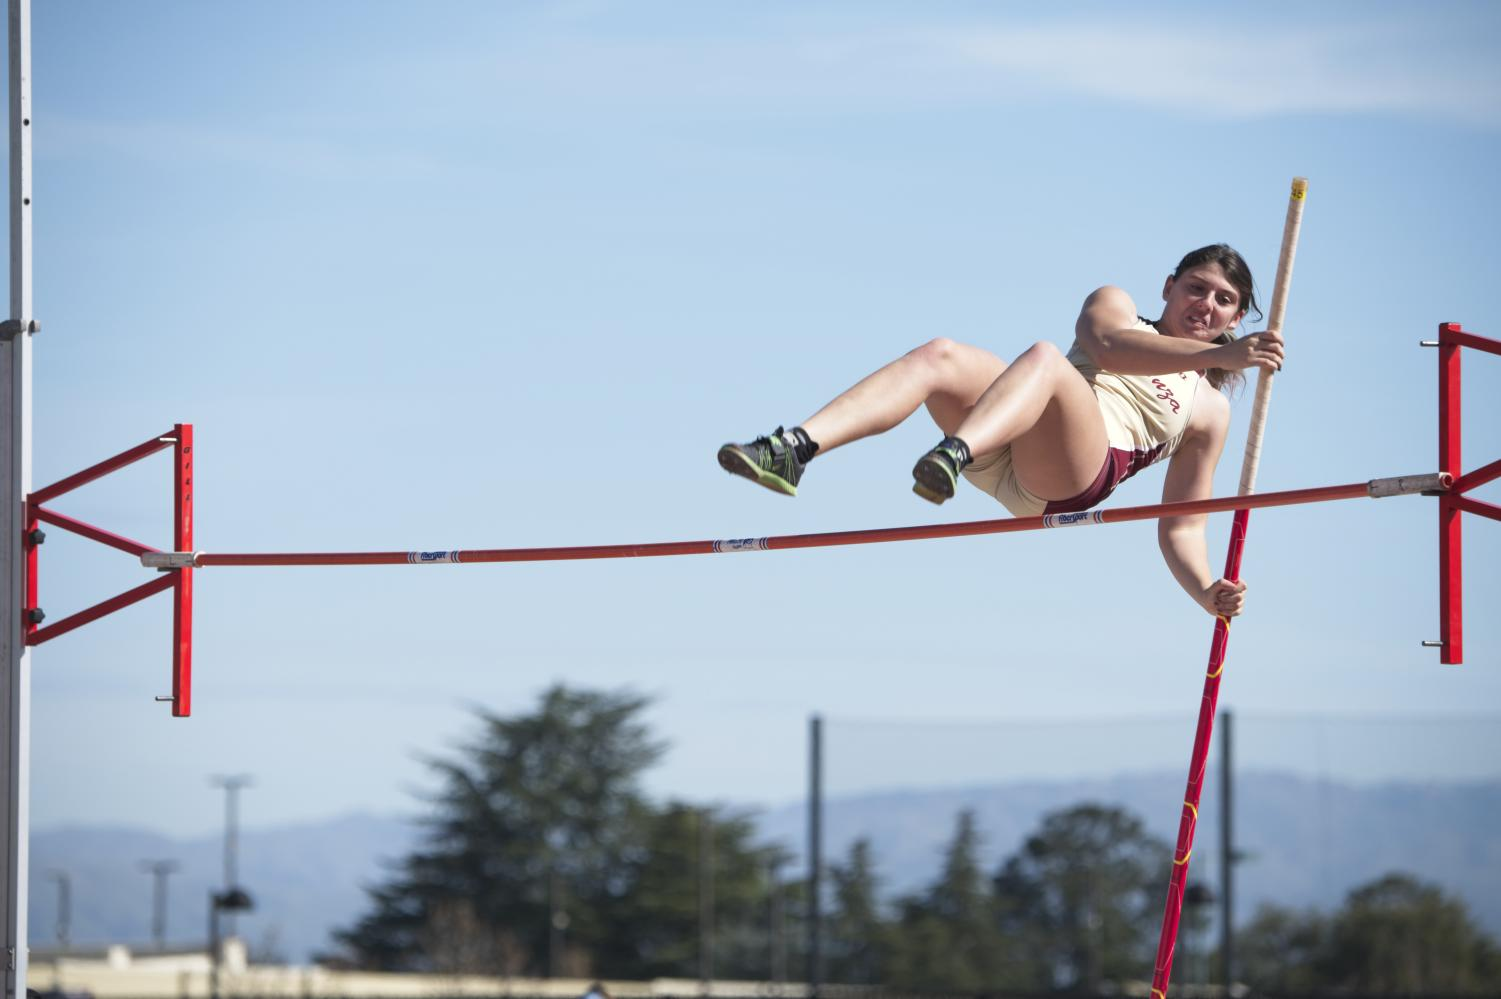 Melissa Favorite, 19, political science major competes in the pole vault at the De Anza Open on Feb. 23.